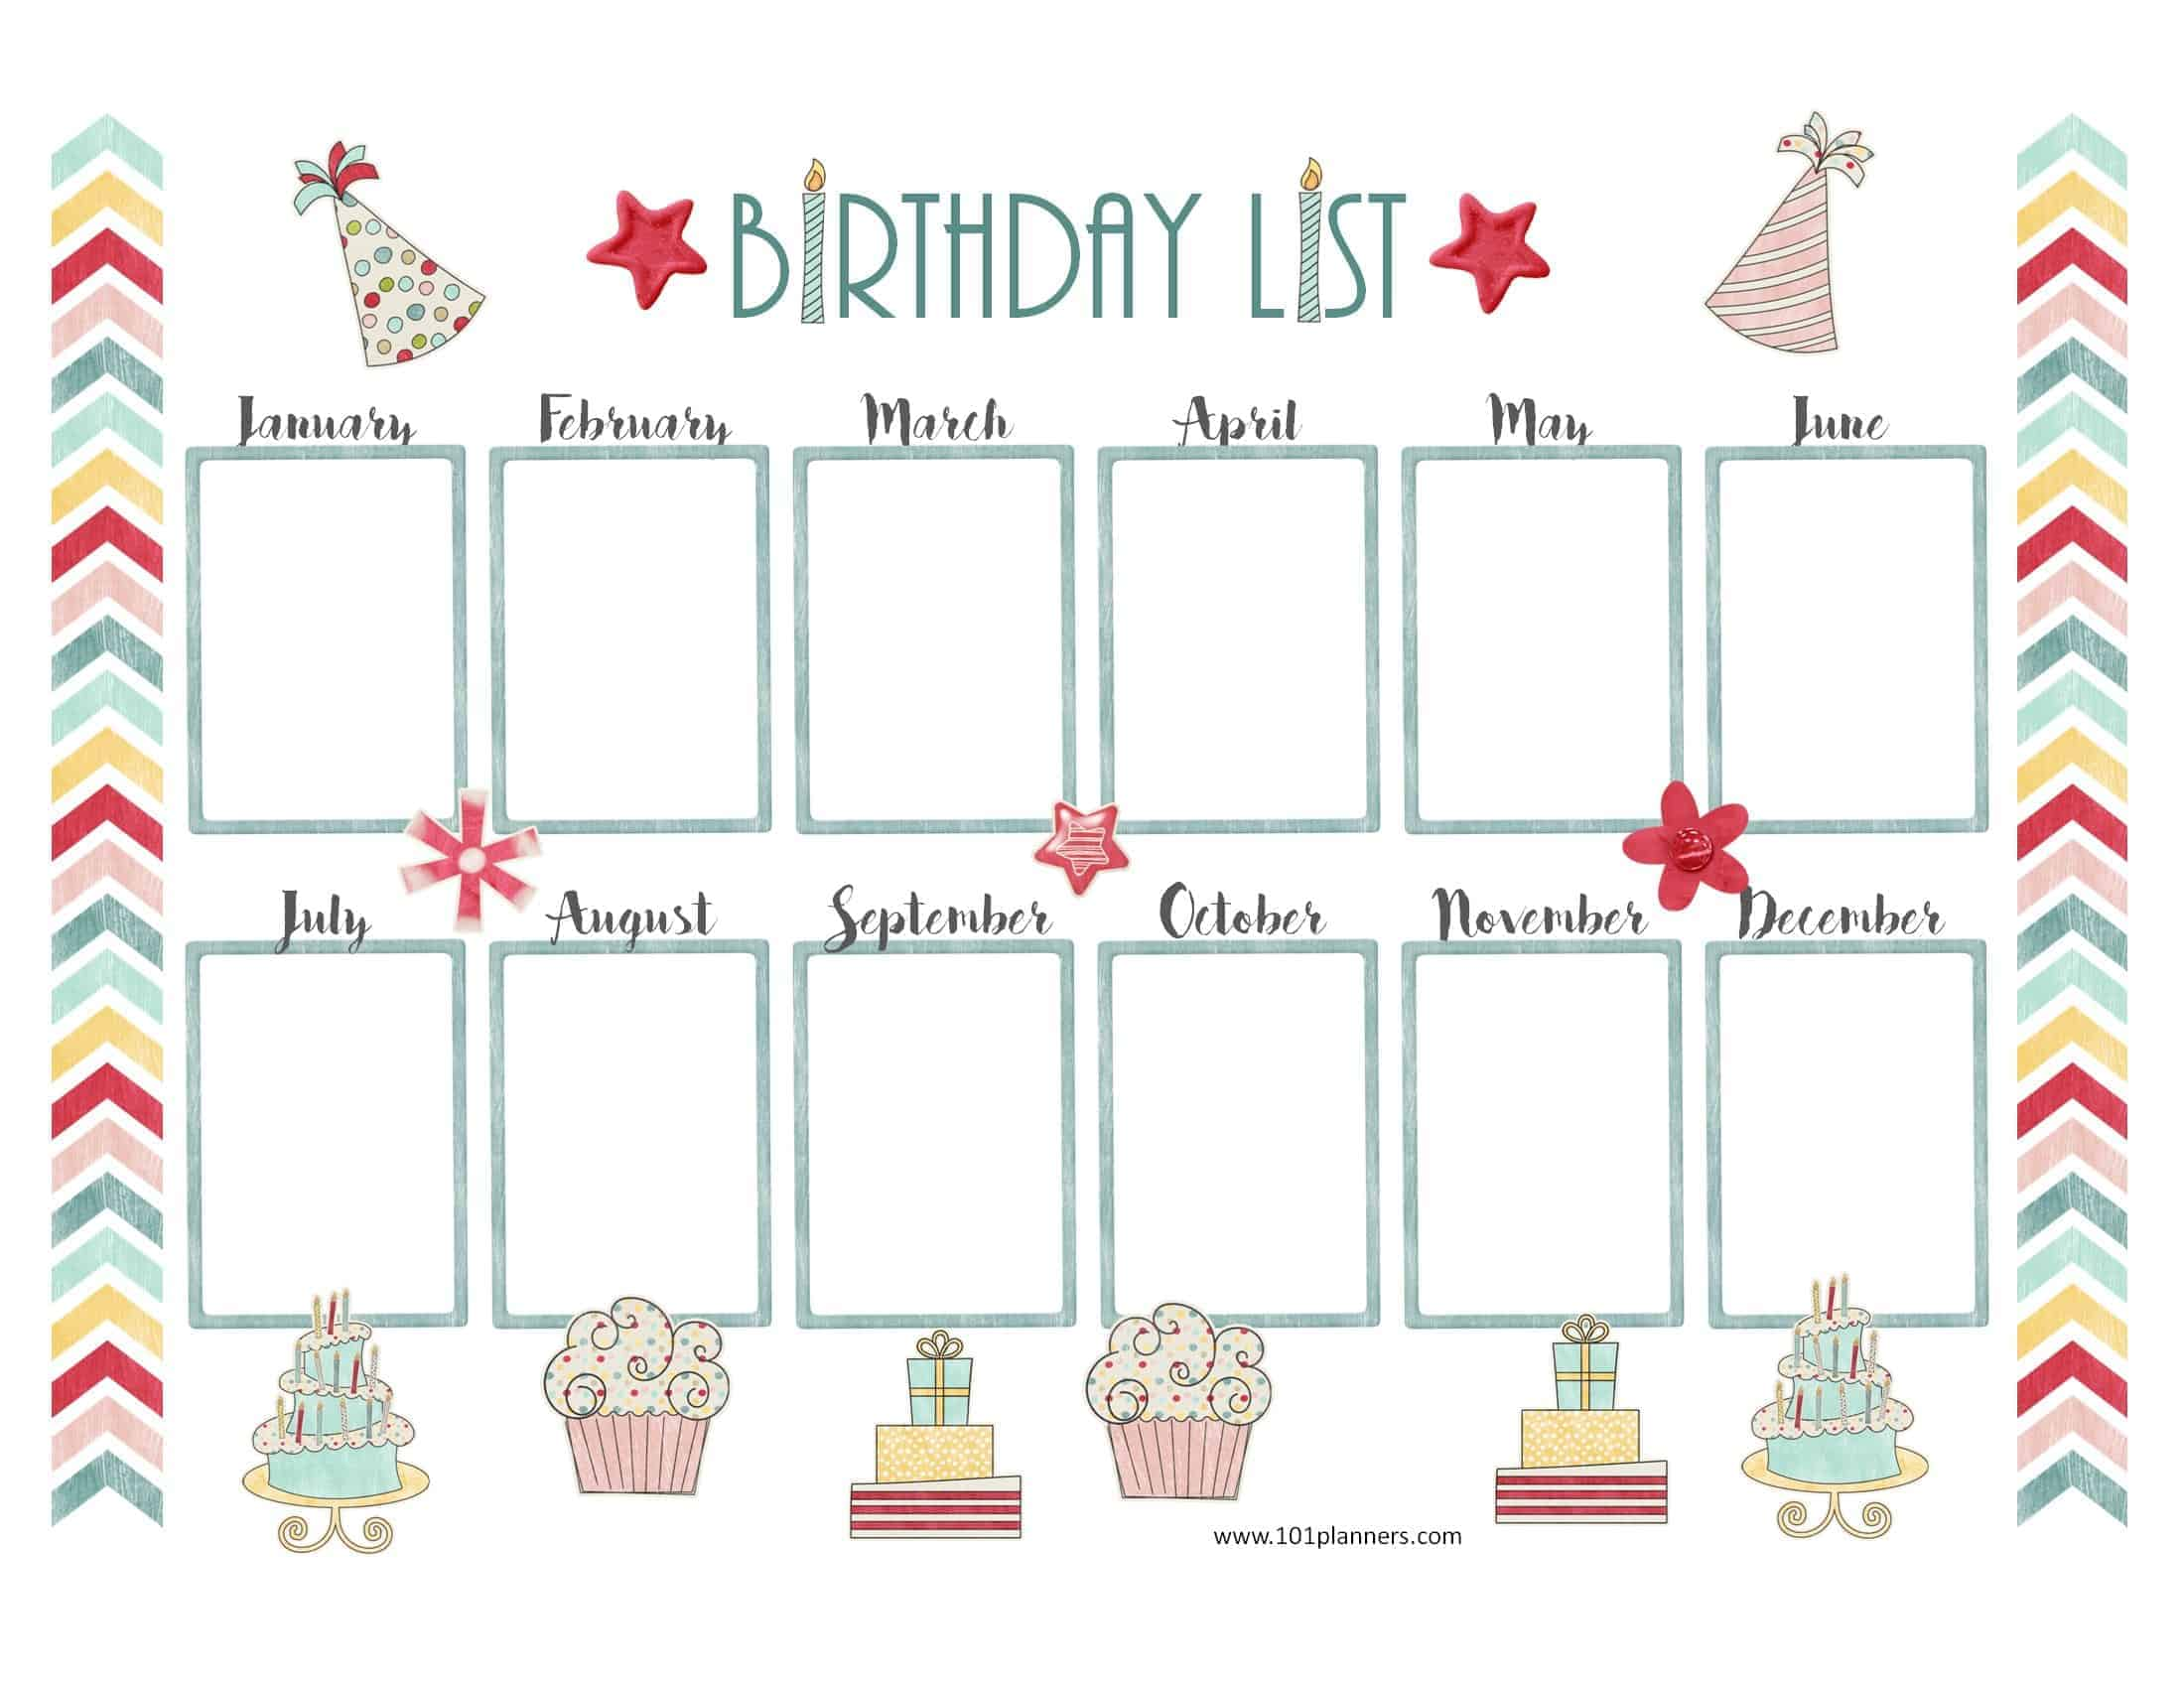 Free birthday calendar customize online print at home birthday calendar template maxwellsz